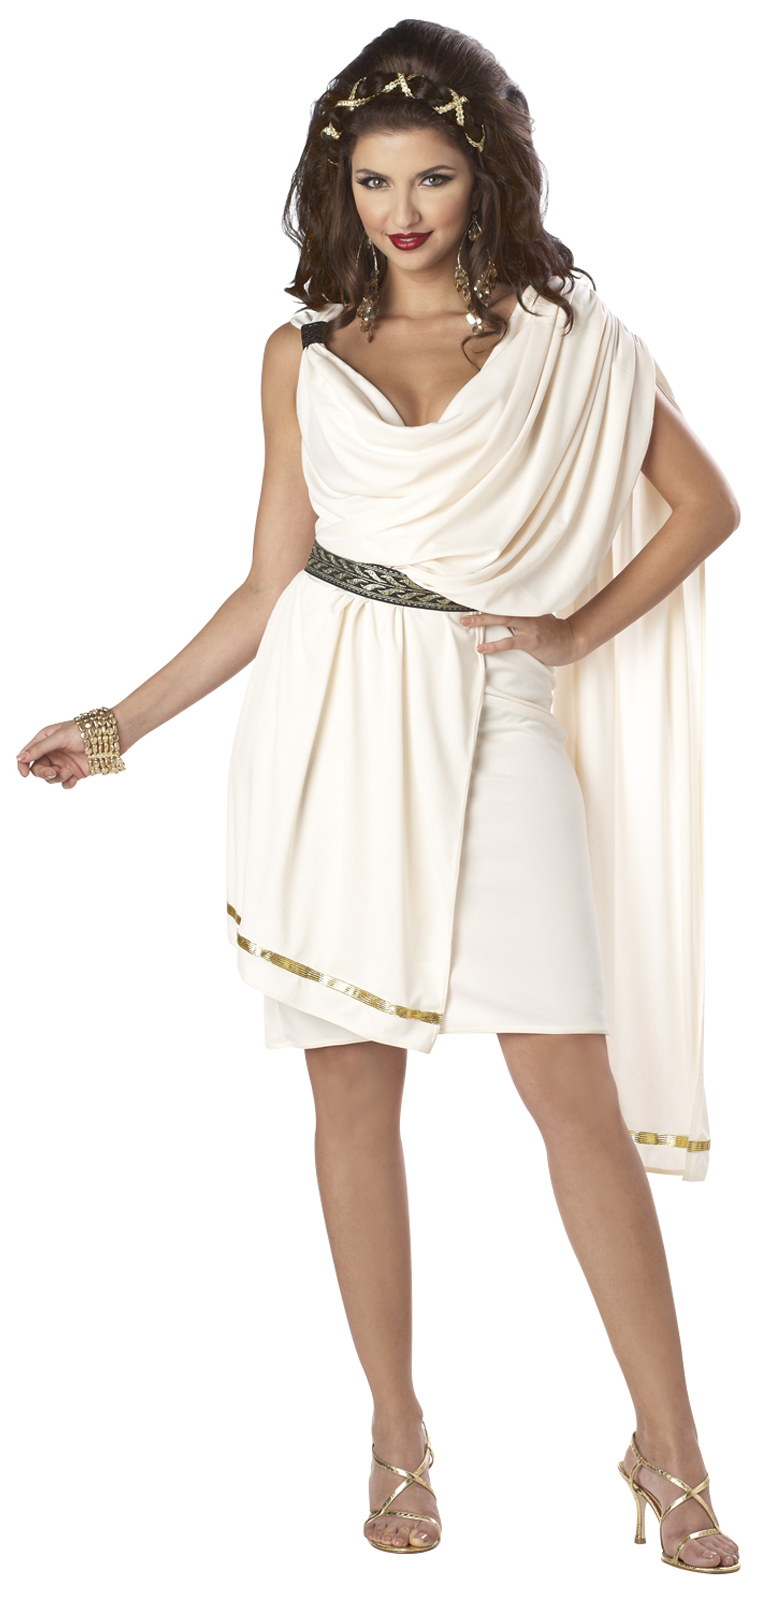 Erotic toga pictures completely